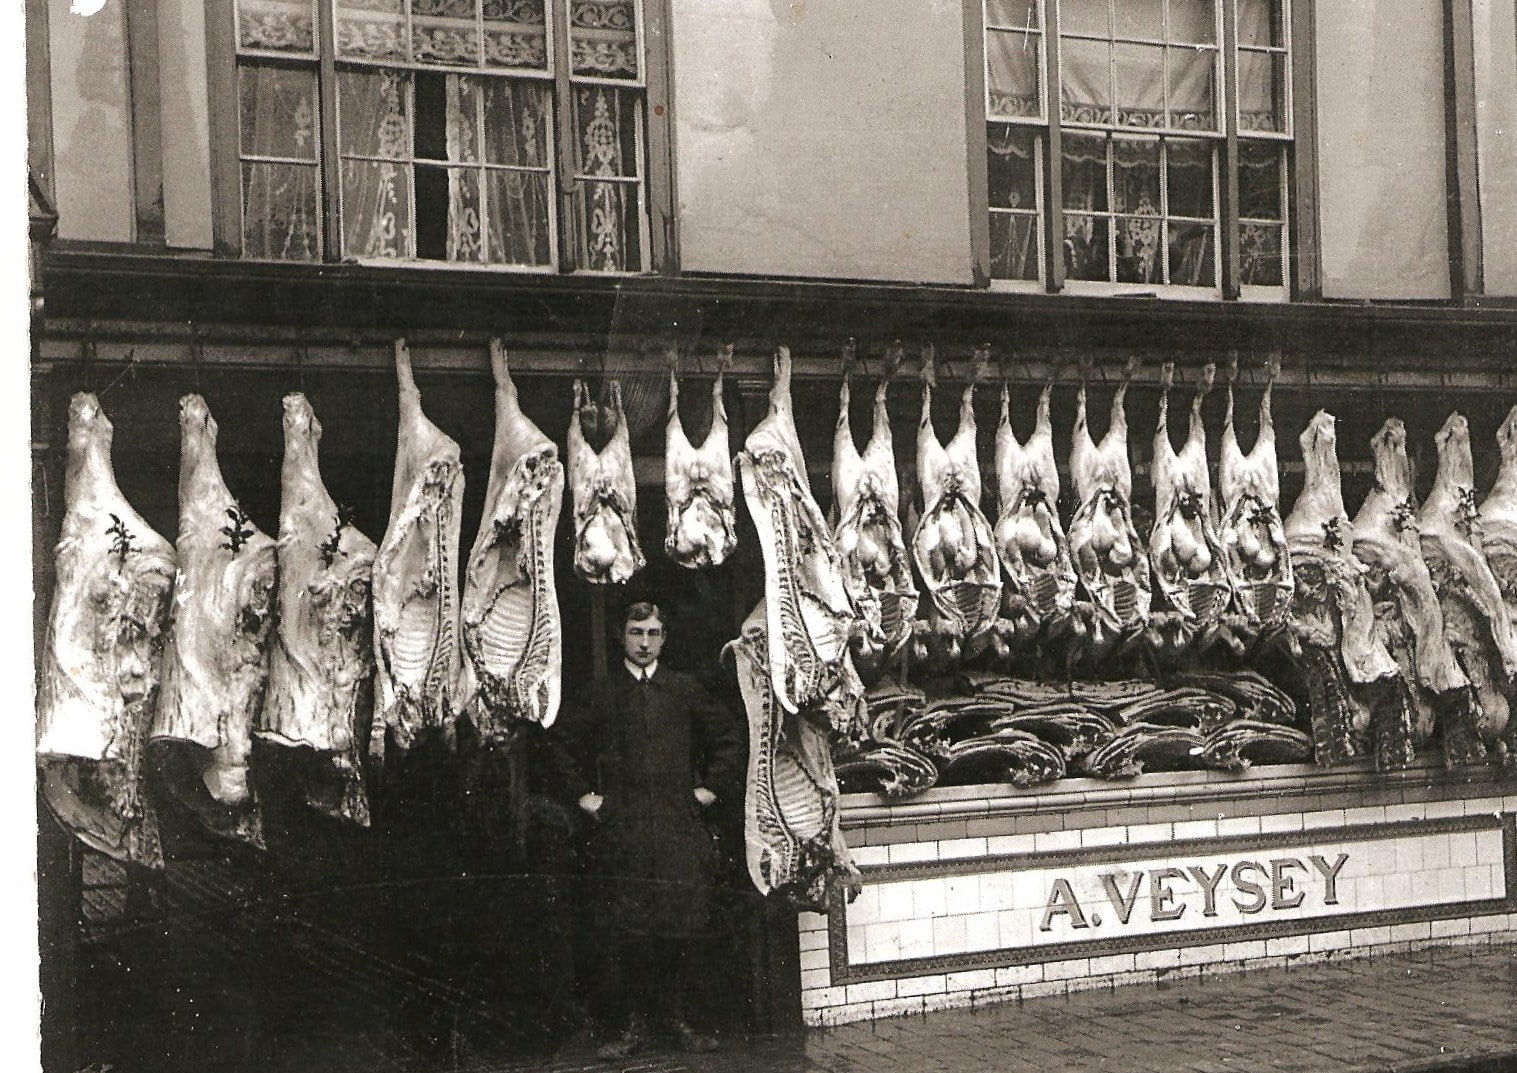 Veyseys Butchers